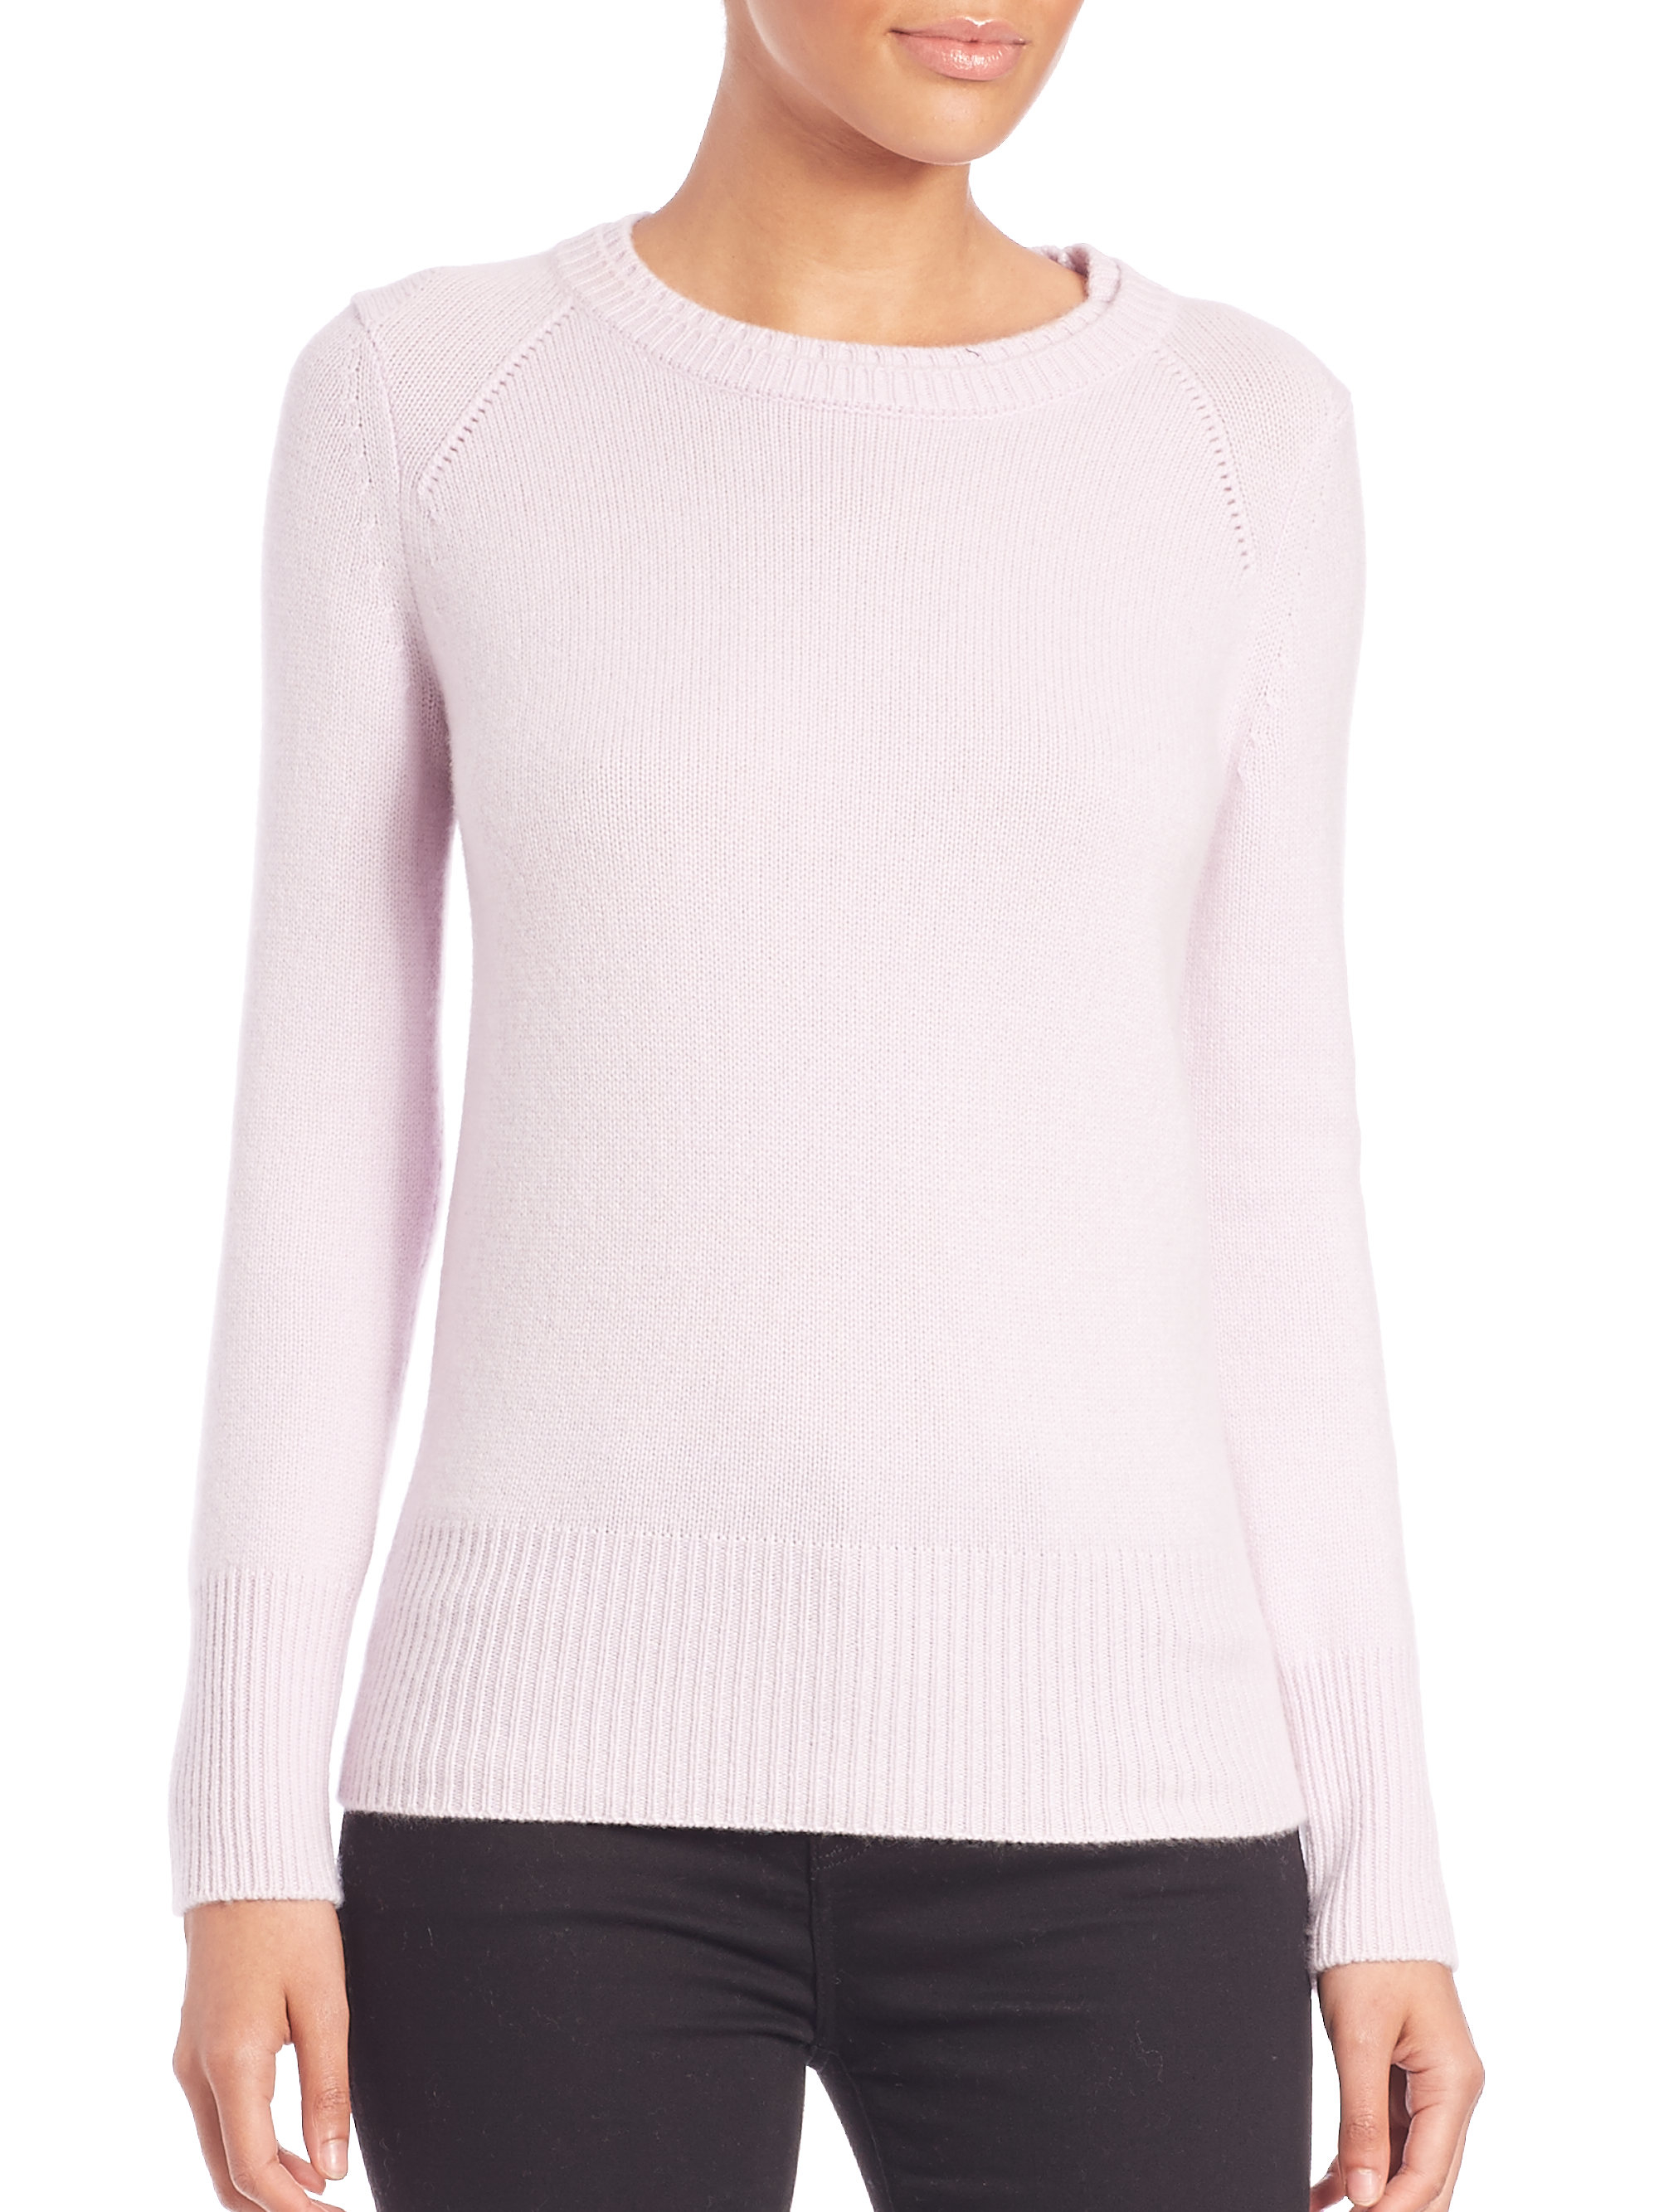 Shop sweaters for women at New York & Company. Choose a look from our collection of women's sweaters, including cardigans, pull overs and more.